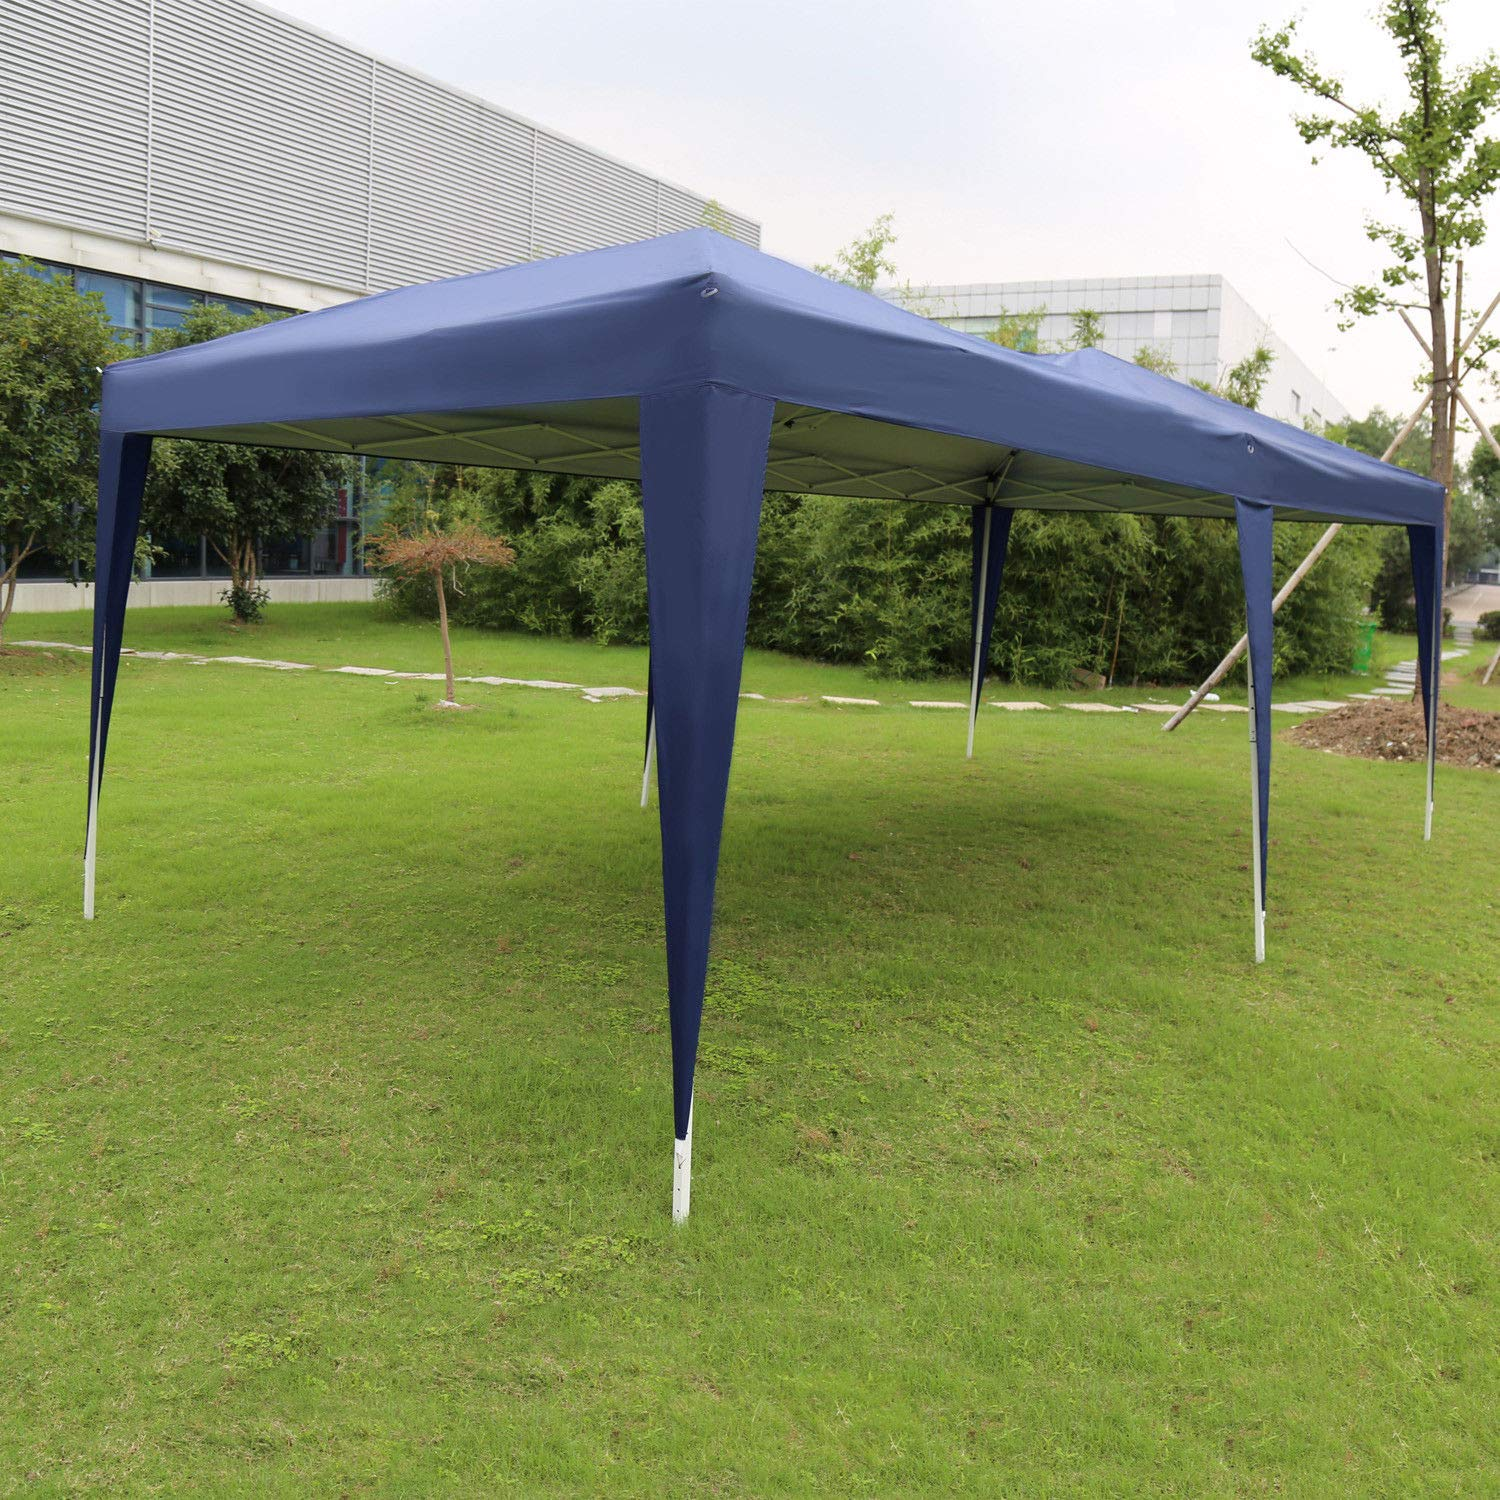 Kinbor Outdoor Portable Adjustable Instant Pop Up Gazebo Canopy Tent by Kinbor (Image #3)